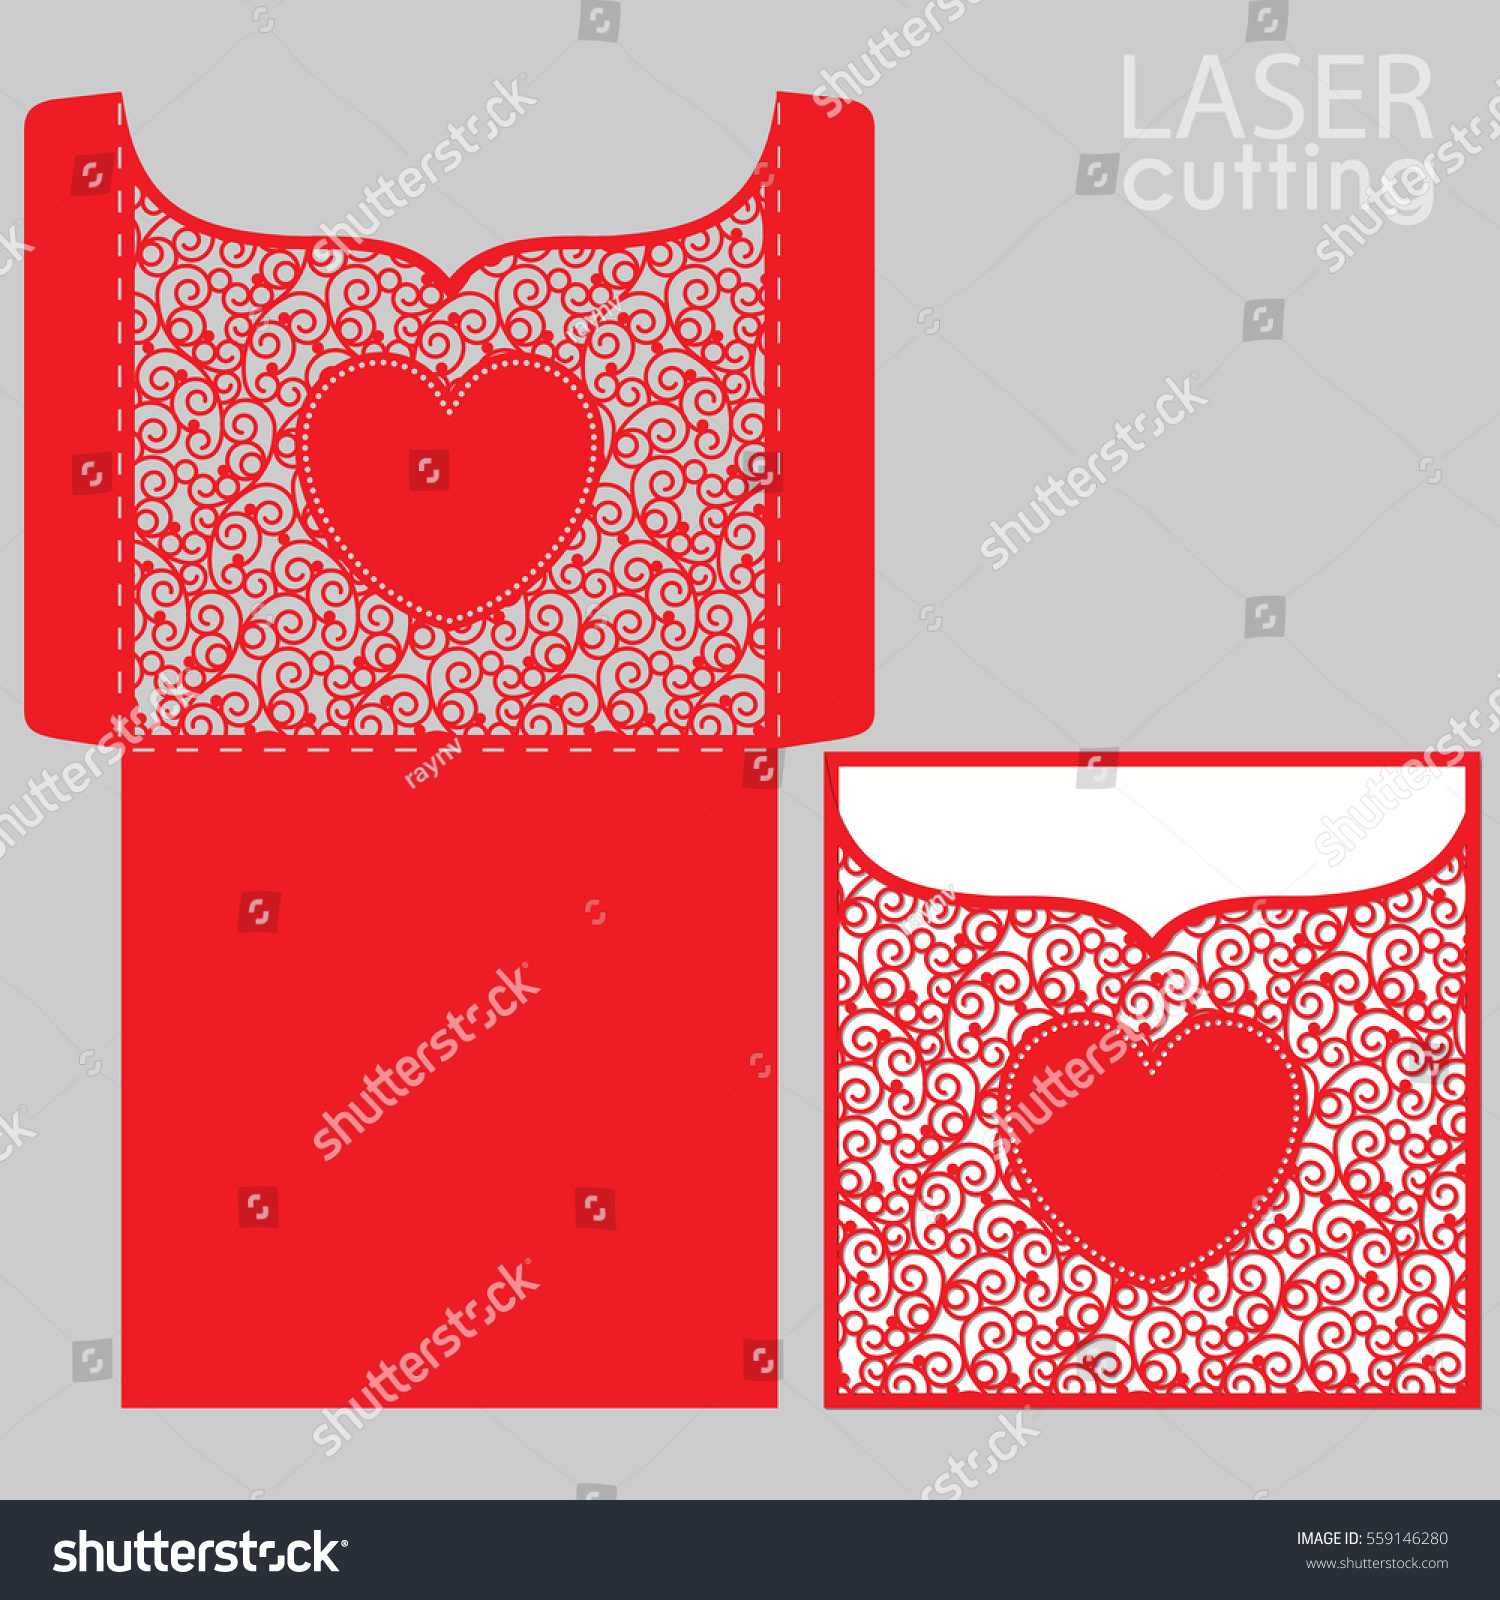 Die Laser Cut Wedding Card Vector Stock Photo (Photo, Vector ...